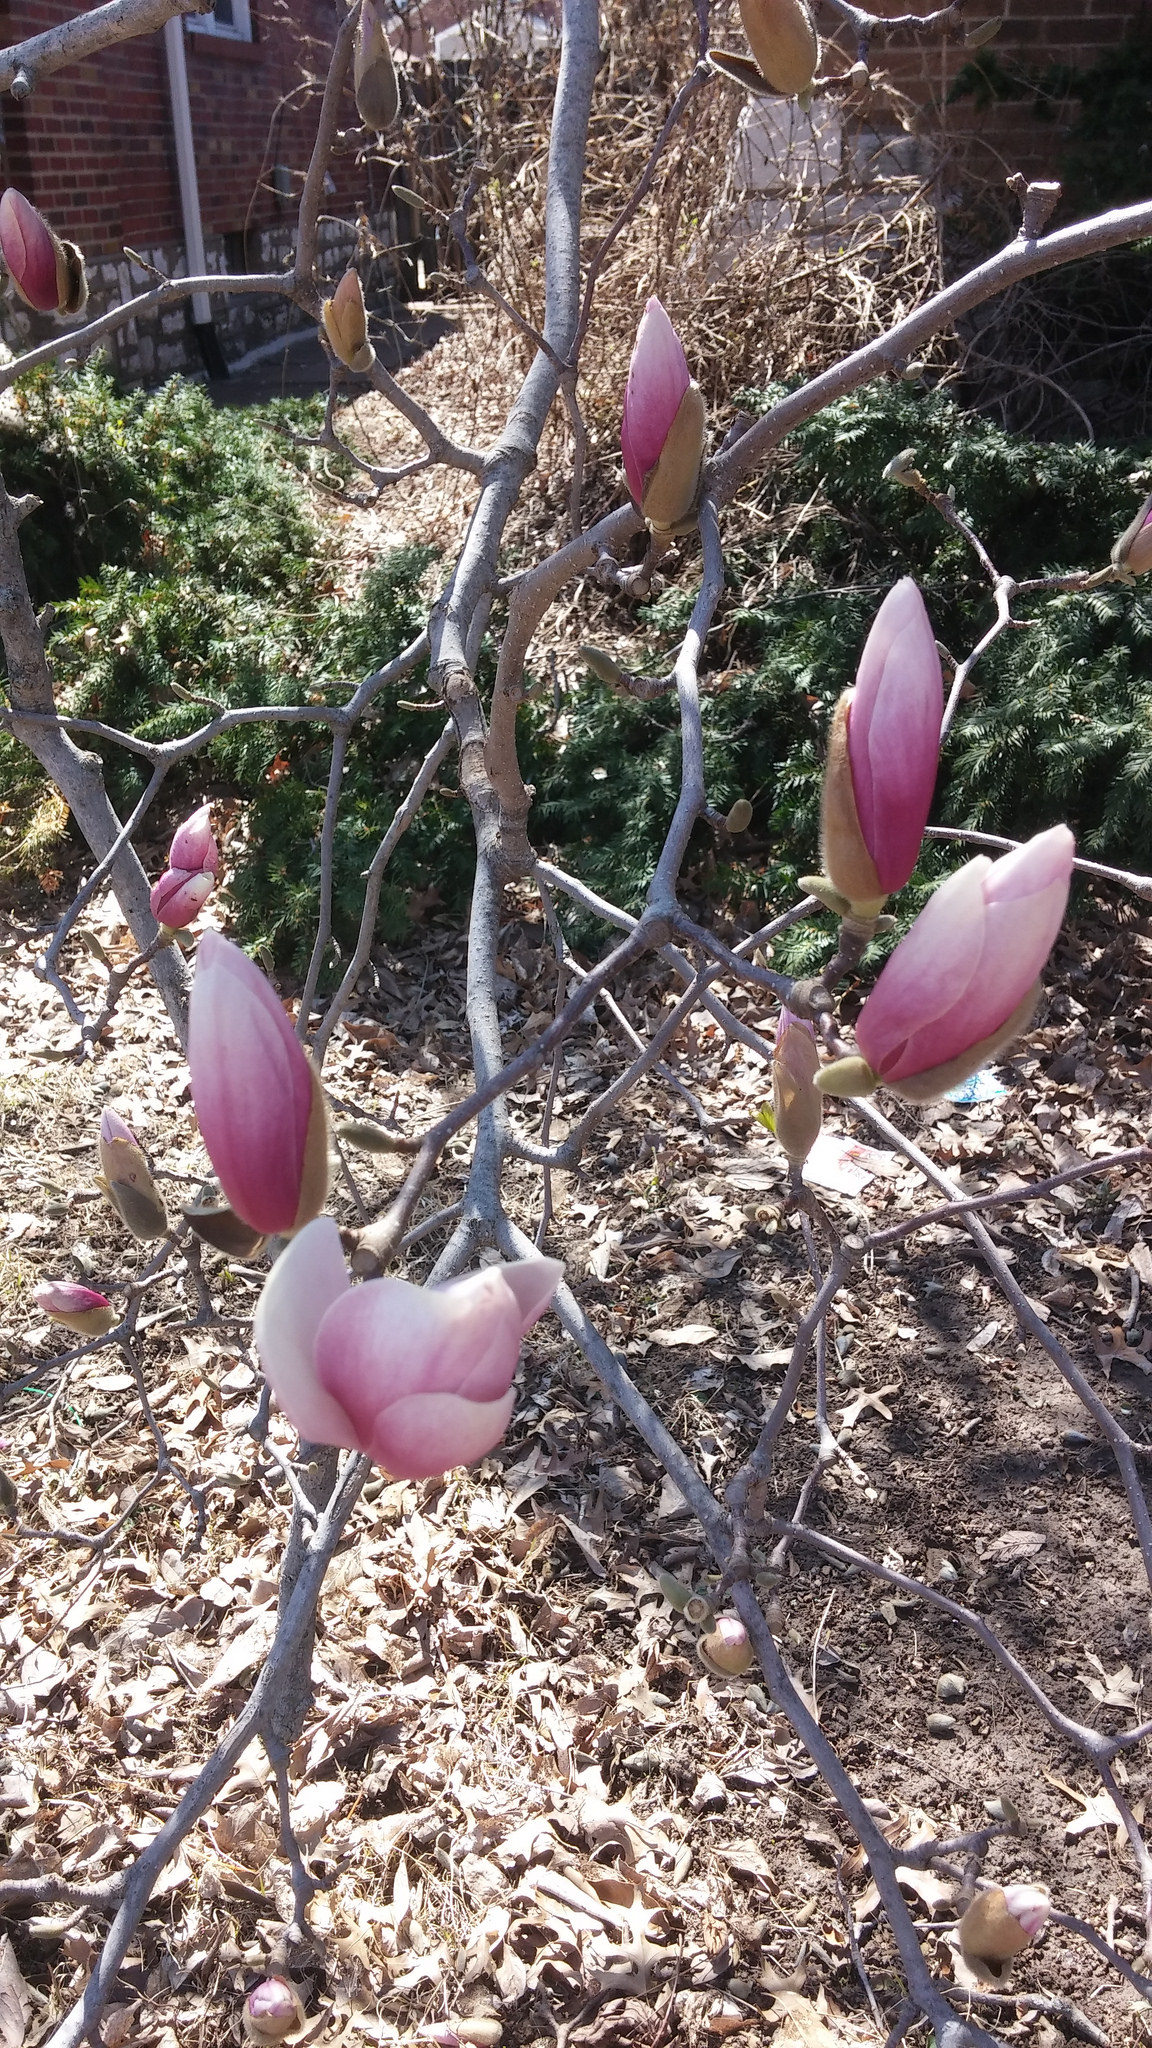 A pretty magnolia tree ready to bloom at any minute!